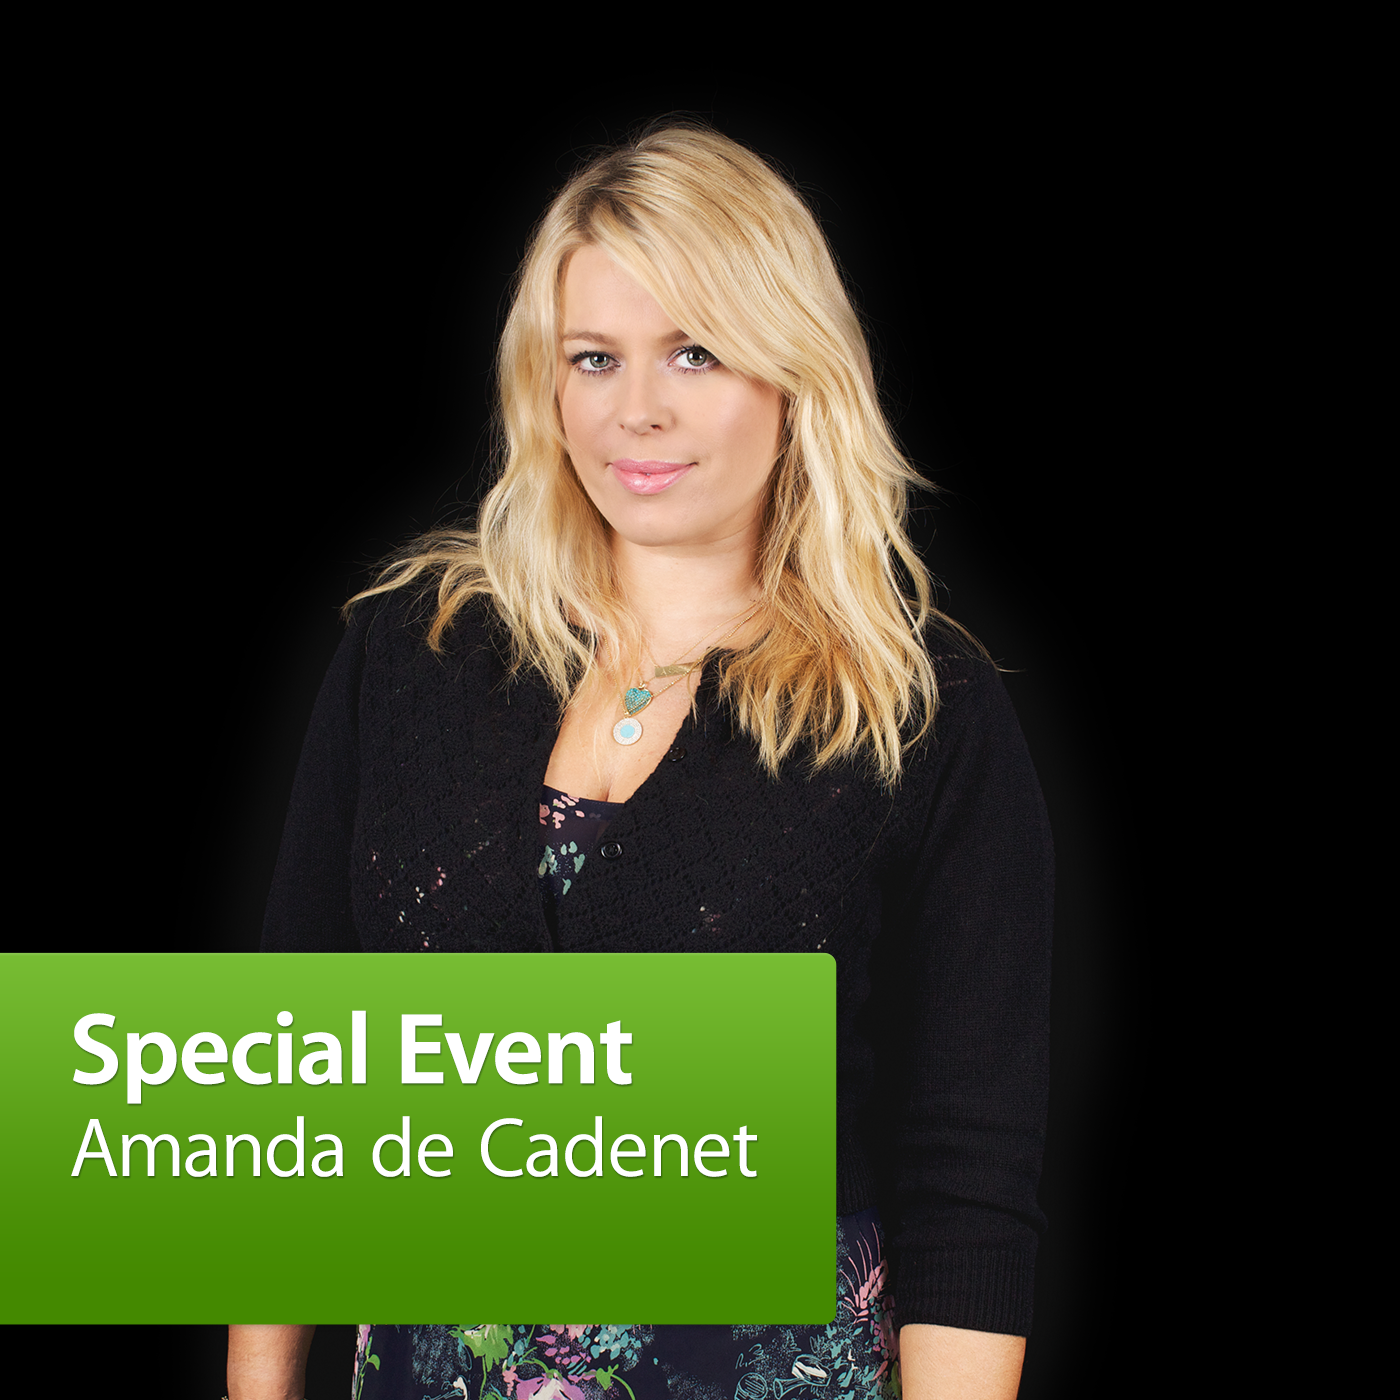 The Conversation with Amanda de Cadenet: Special Event